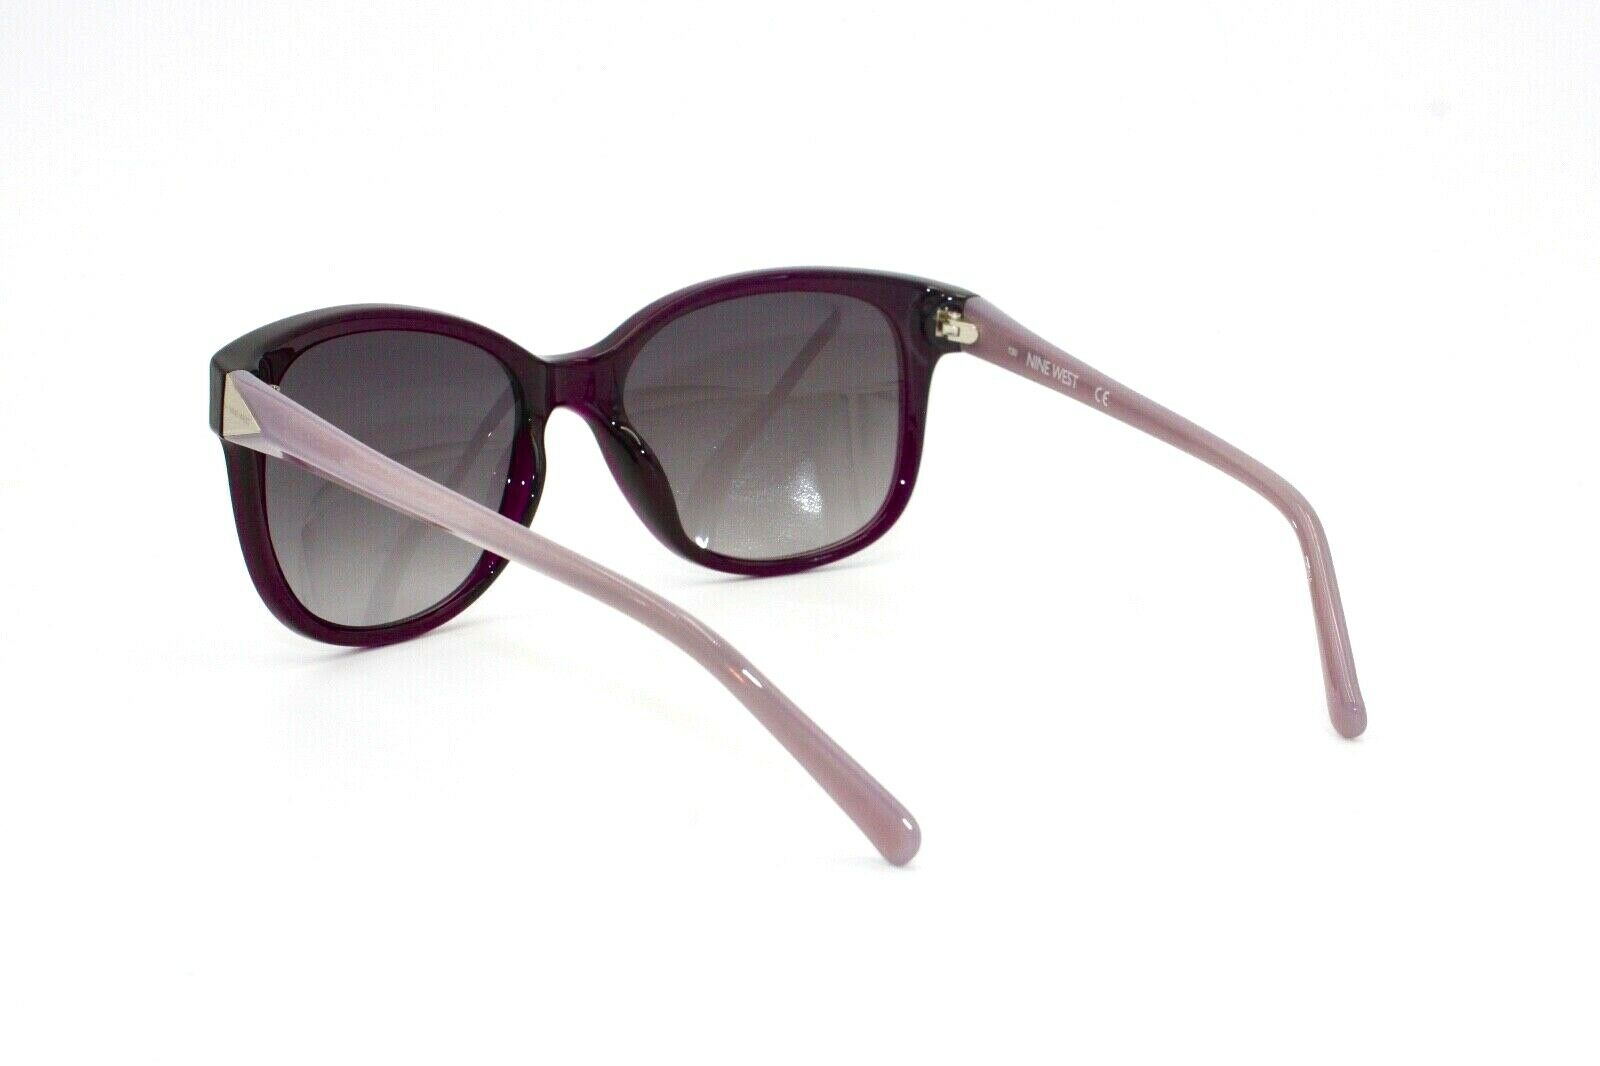 Nine West Sunglasses NW570S 515 54 18 130 - Mydesigneroptic